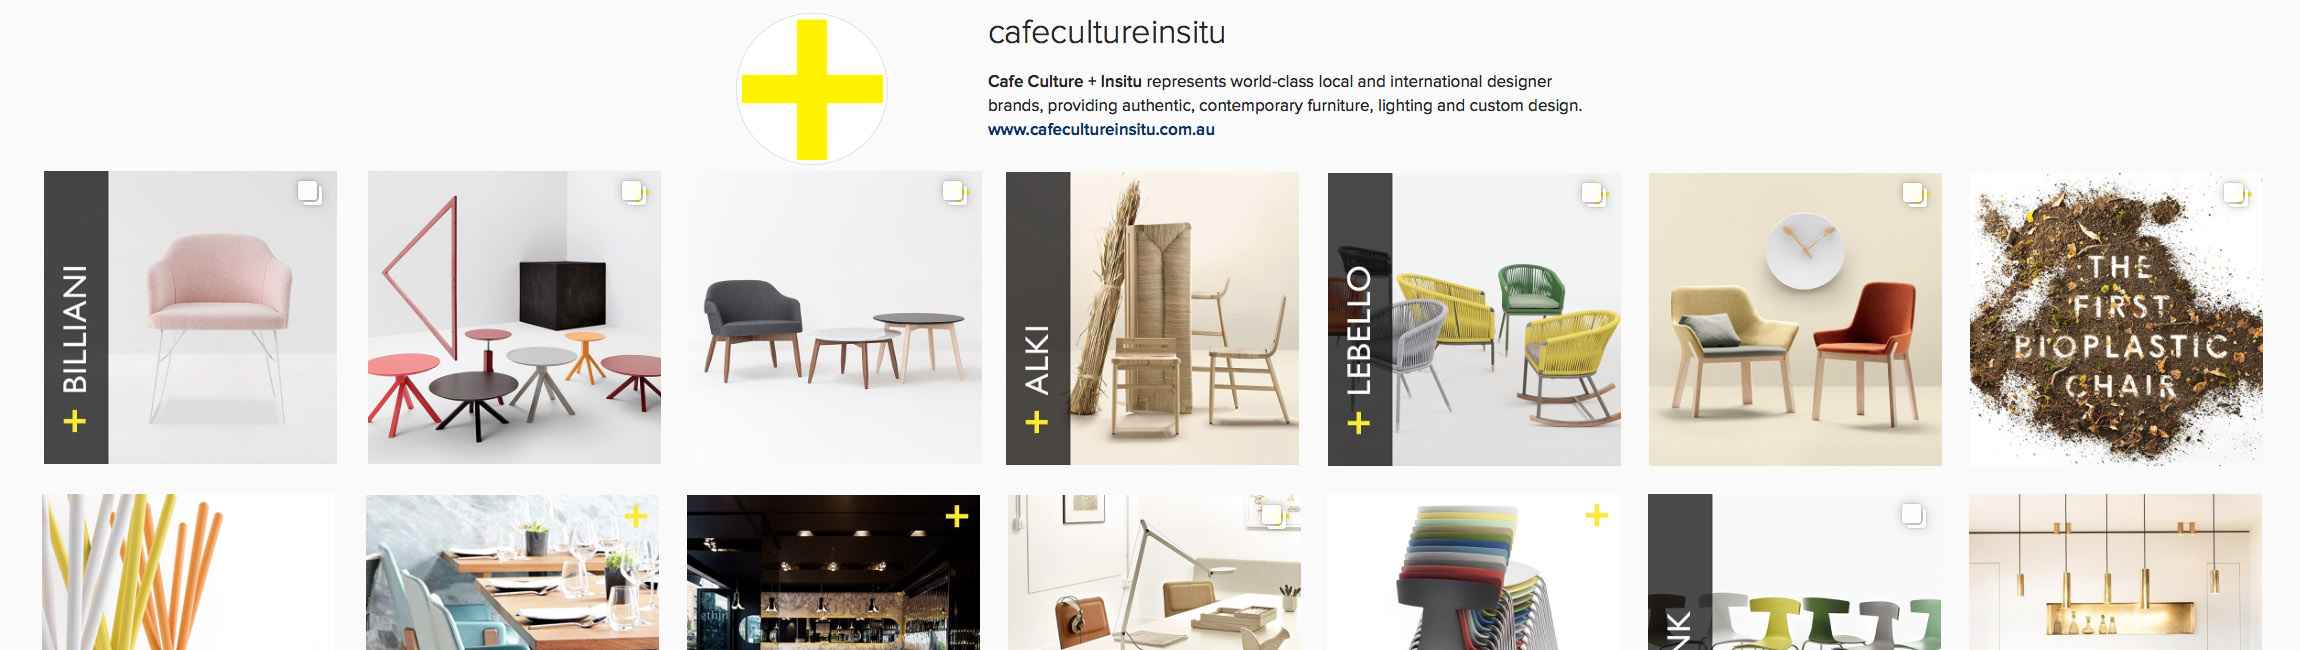 cafecultureinsitu7